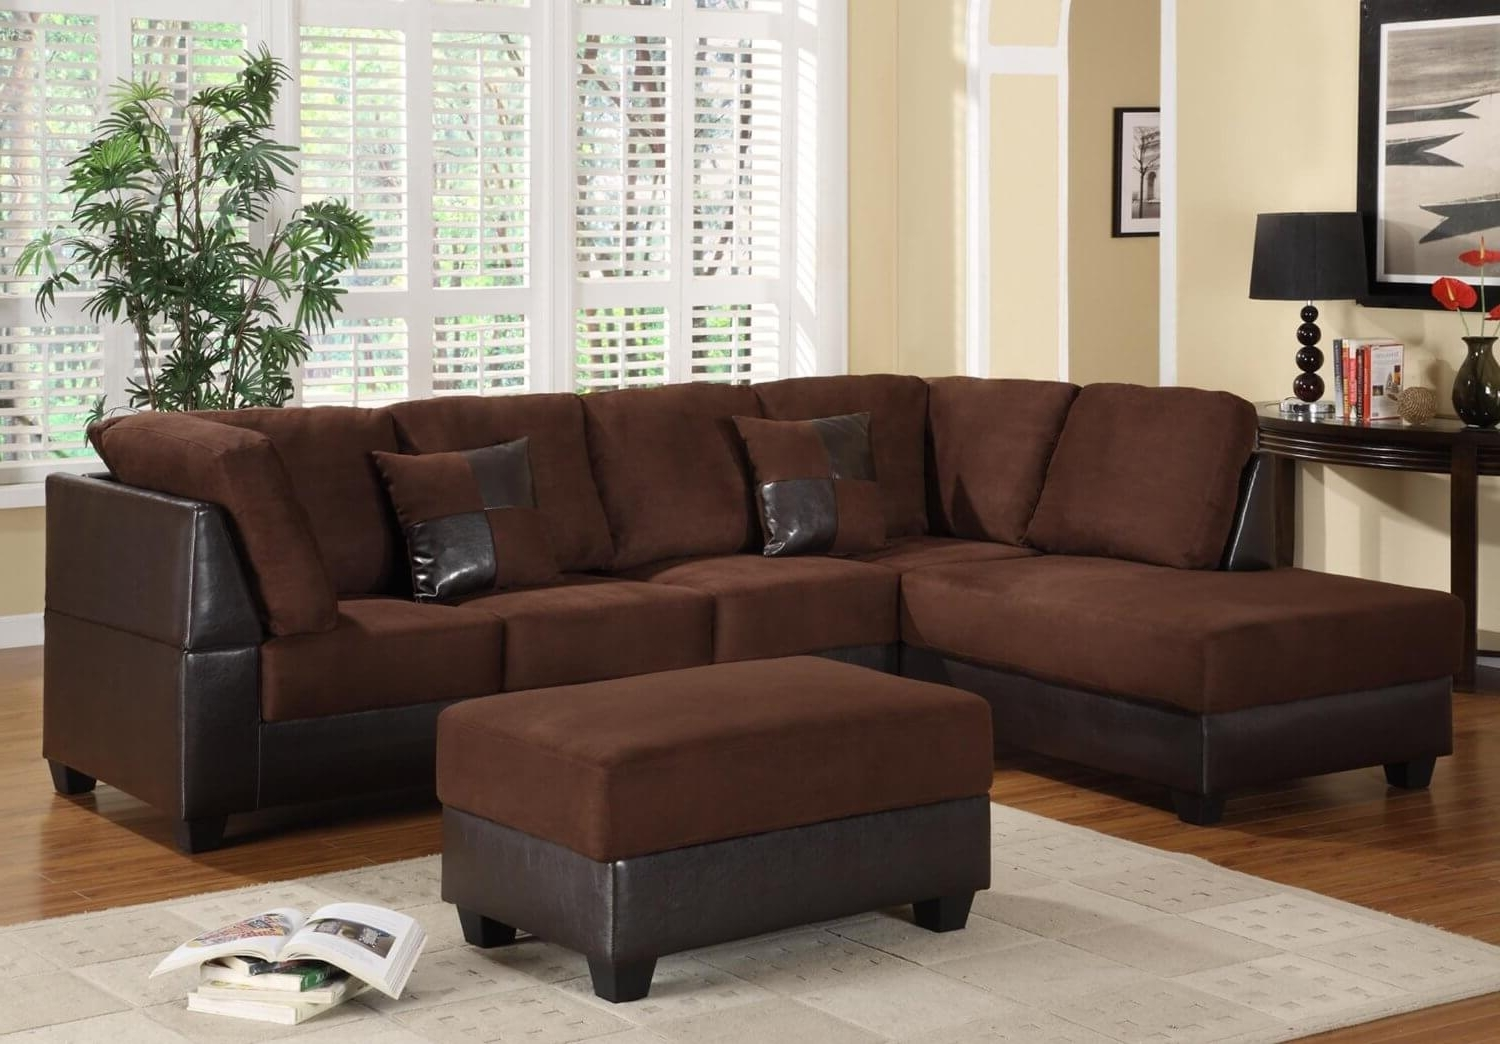 Most Popular Sectional Sofas Under 600 With 40 Cheap Sectional Sofas Under $500 For (View 6 of 15)